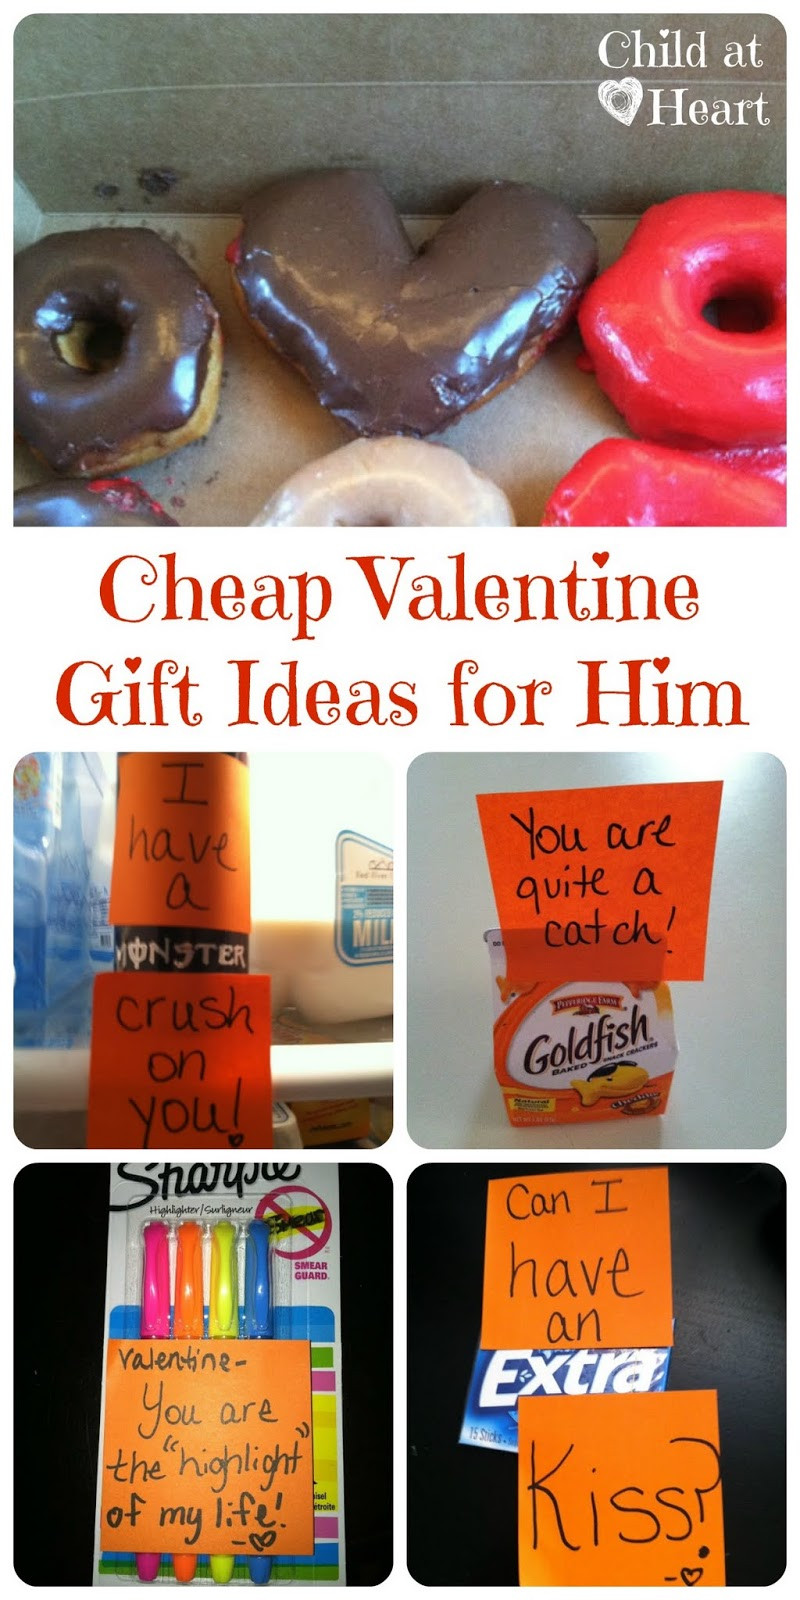 Best ideas about Valentines Day Gift Ideas For Boyfriend . Save or Pin Cheap Valentine Gift Ideas for Him Child at Heart Blog Now.